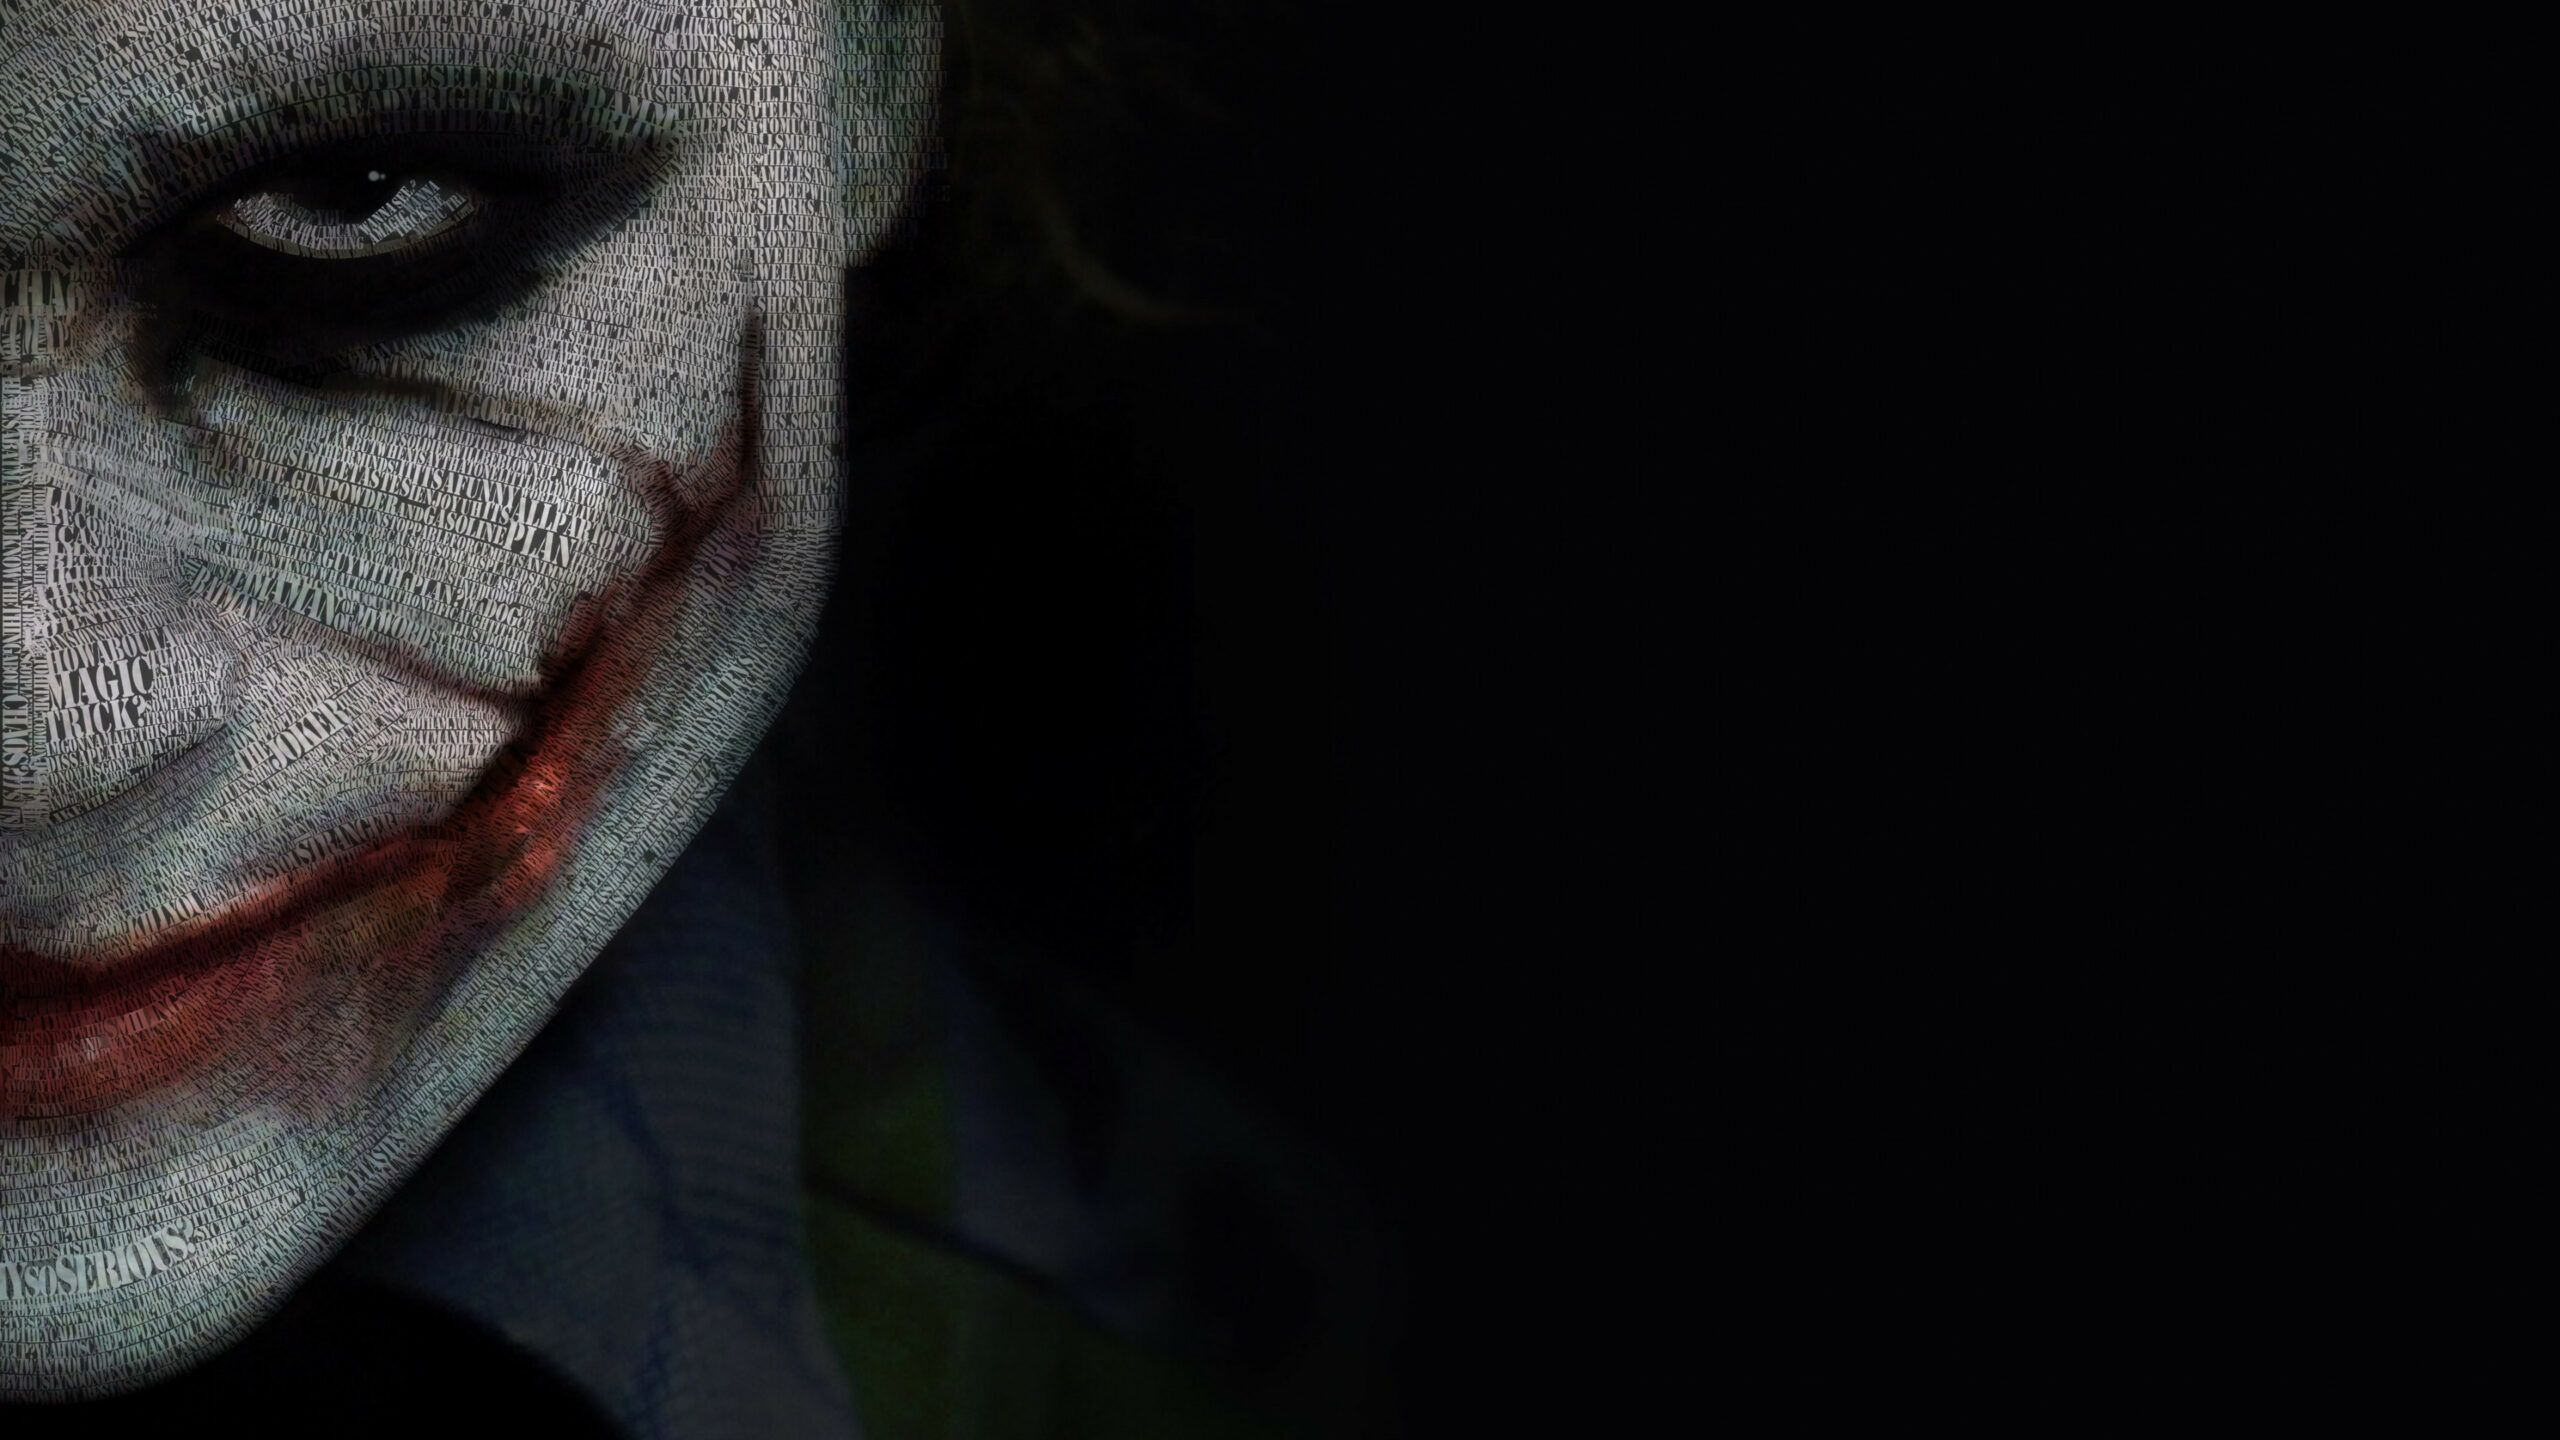 Joker 4k Ultra Hd Wallpapers Top Free Joker 4k Ultra Hd Backgrounds Wallpaperaccess In 2020 Joker Pics Joker Wallpapers Joker Hd Wallpaper